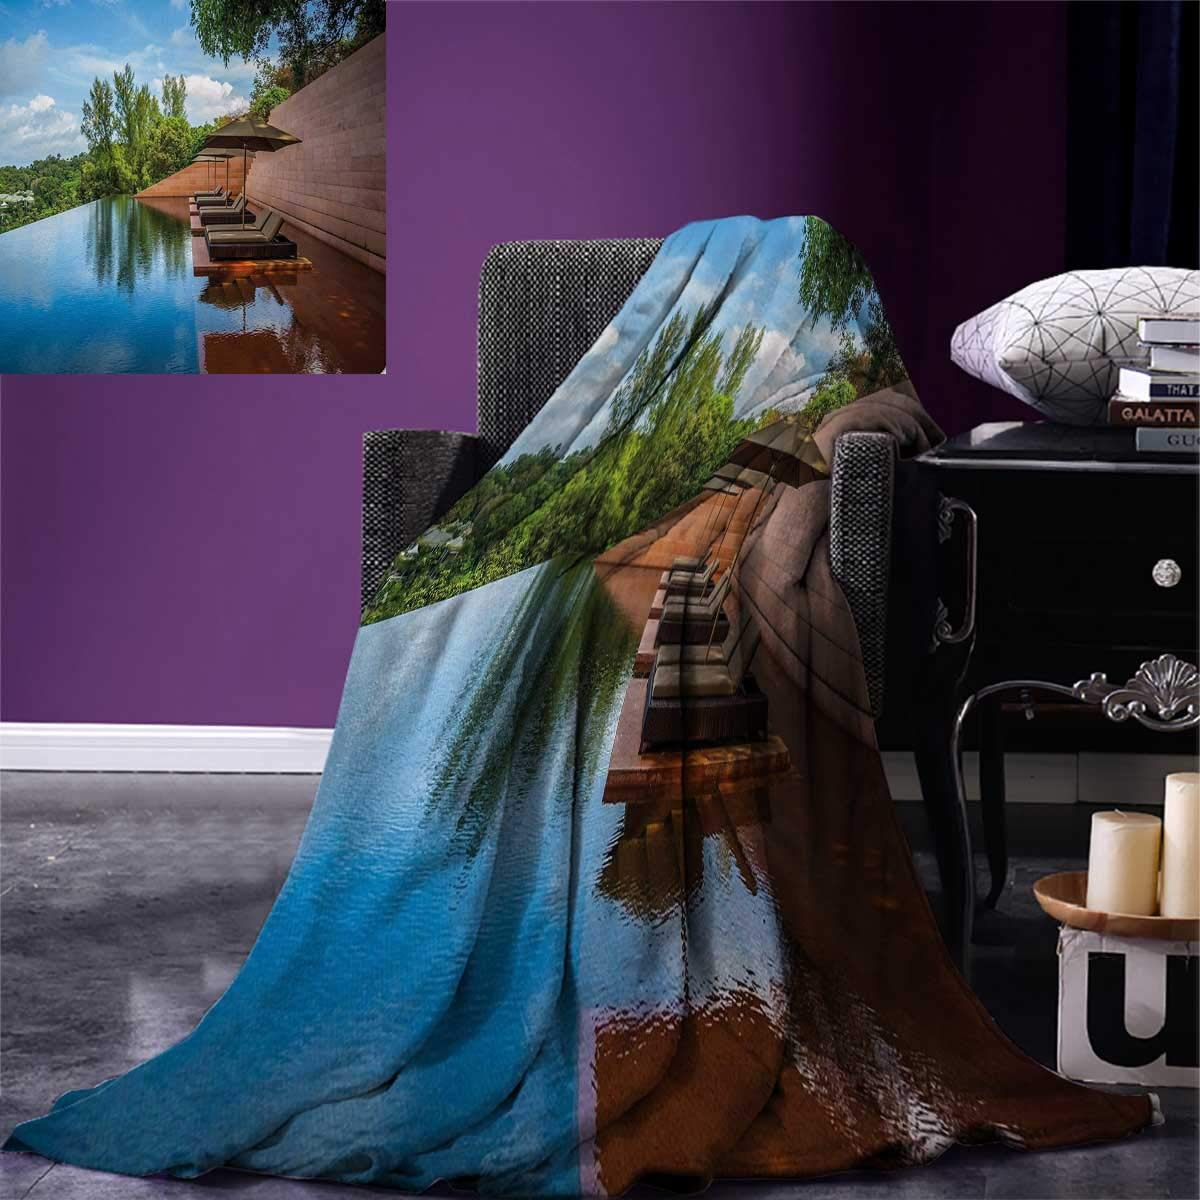 Anniutwo Nature Warm Microfiber All Season Blanket Sofa in Water Hotel Furniture Resort Vacation Seascape Travel Holiday Print Image Blanket 62''x60'' Redwood Green Sky Blue